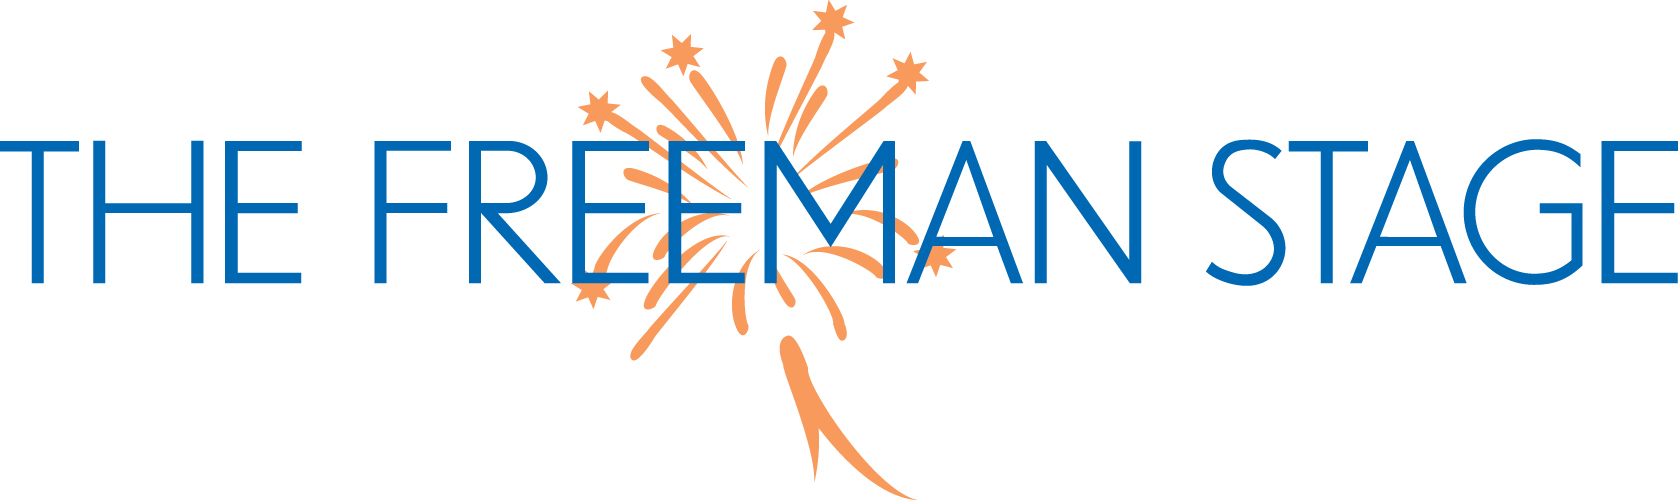 2018 Freeman Stage logo blue.jpg